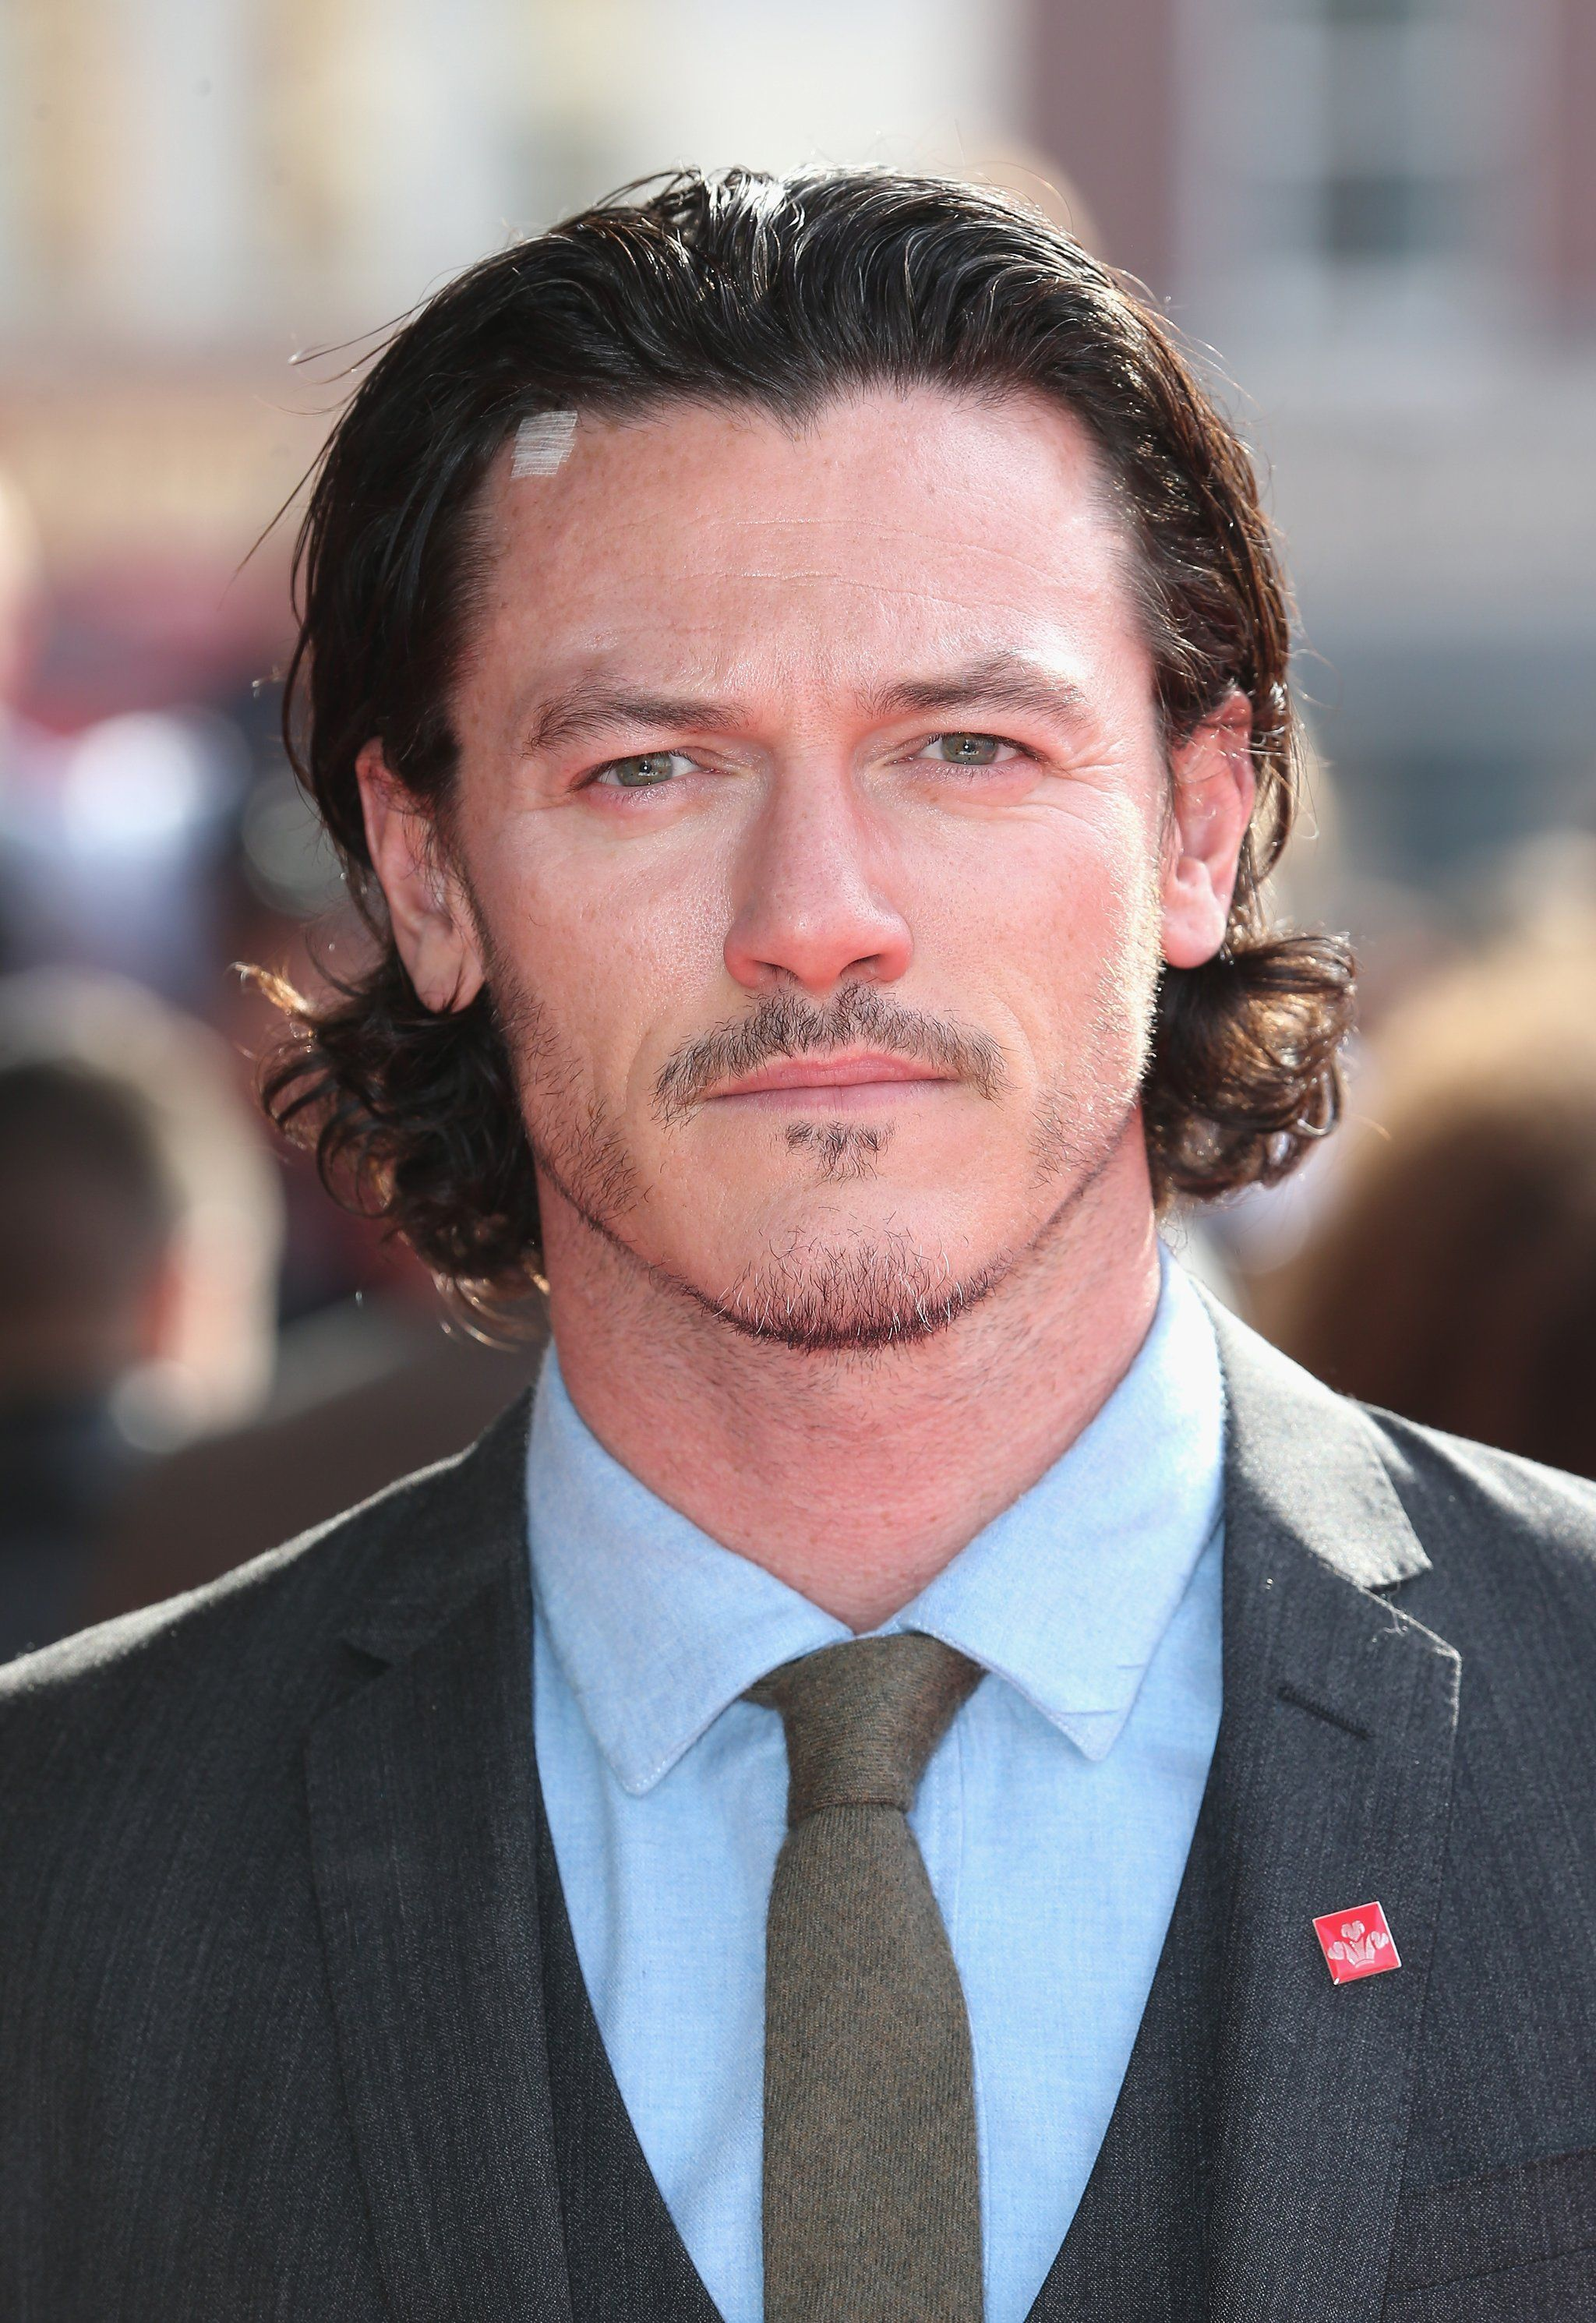 These Steamy Luke Evans Pictures Will Make You Crank the AC Up to Full Blast